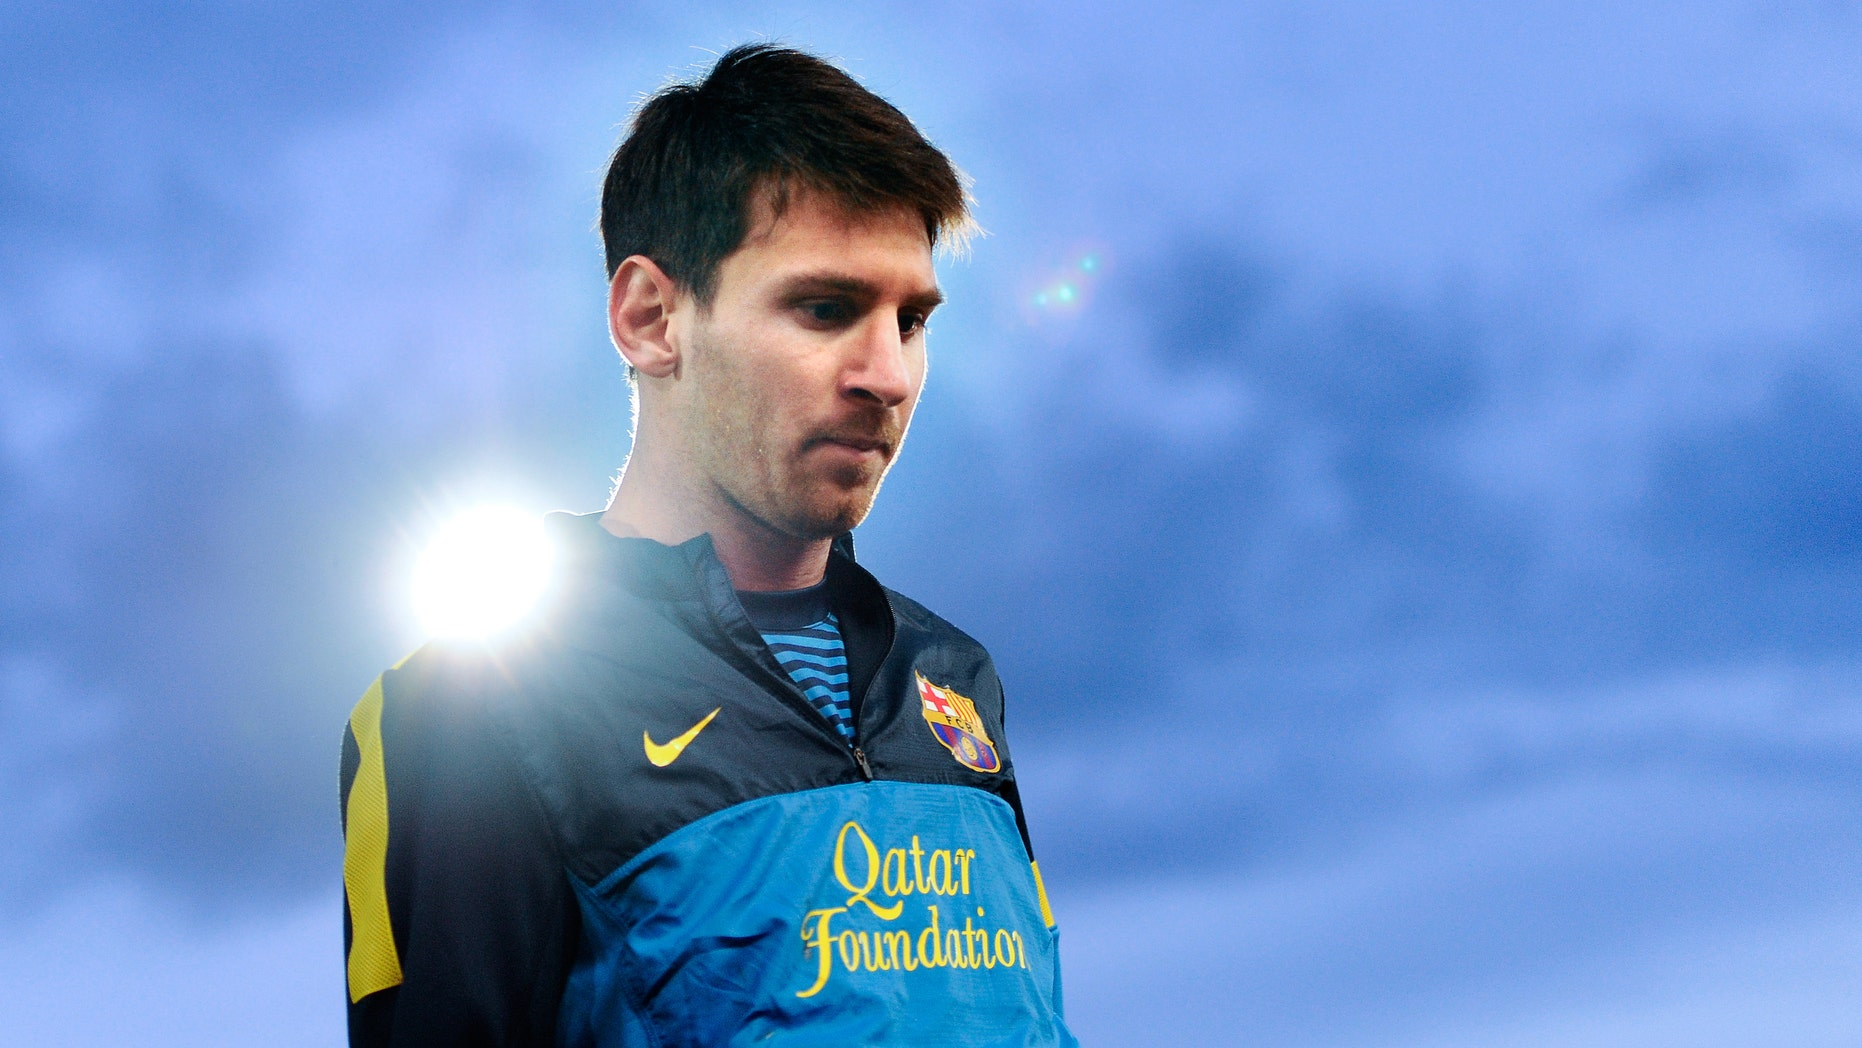 Lionel Messi of FC Barcelona looks on during the warm up prior to the La Liga match between RCD Mallorca and FC Barcelona at Iberostar Stadium on November 11, 2012 in Mallorca, Spain.  (Photo by David Ramos/Getty Images)